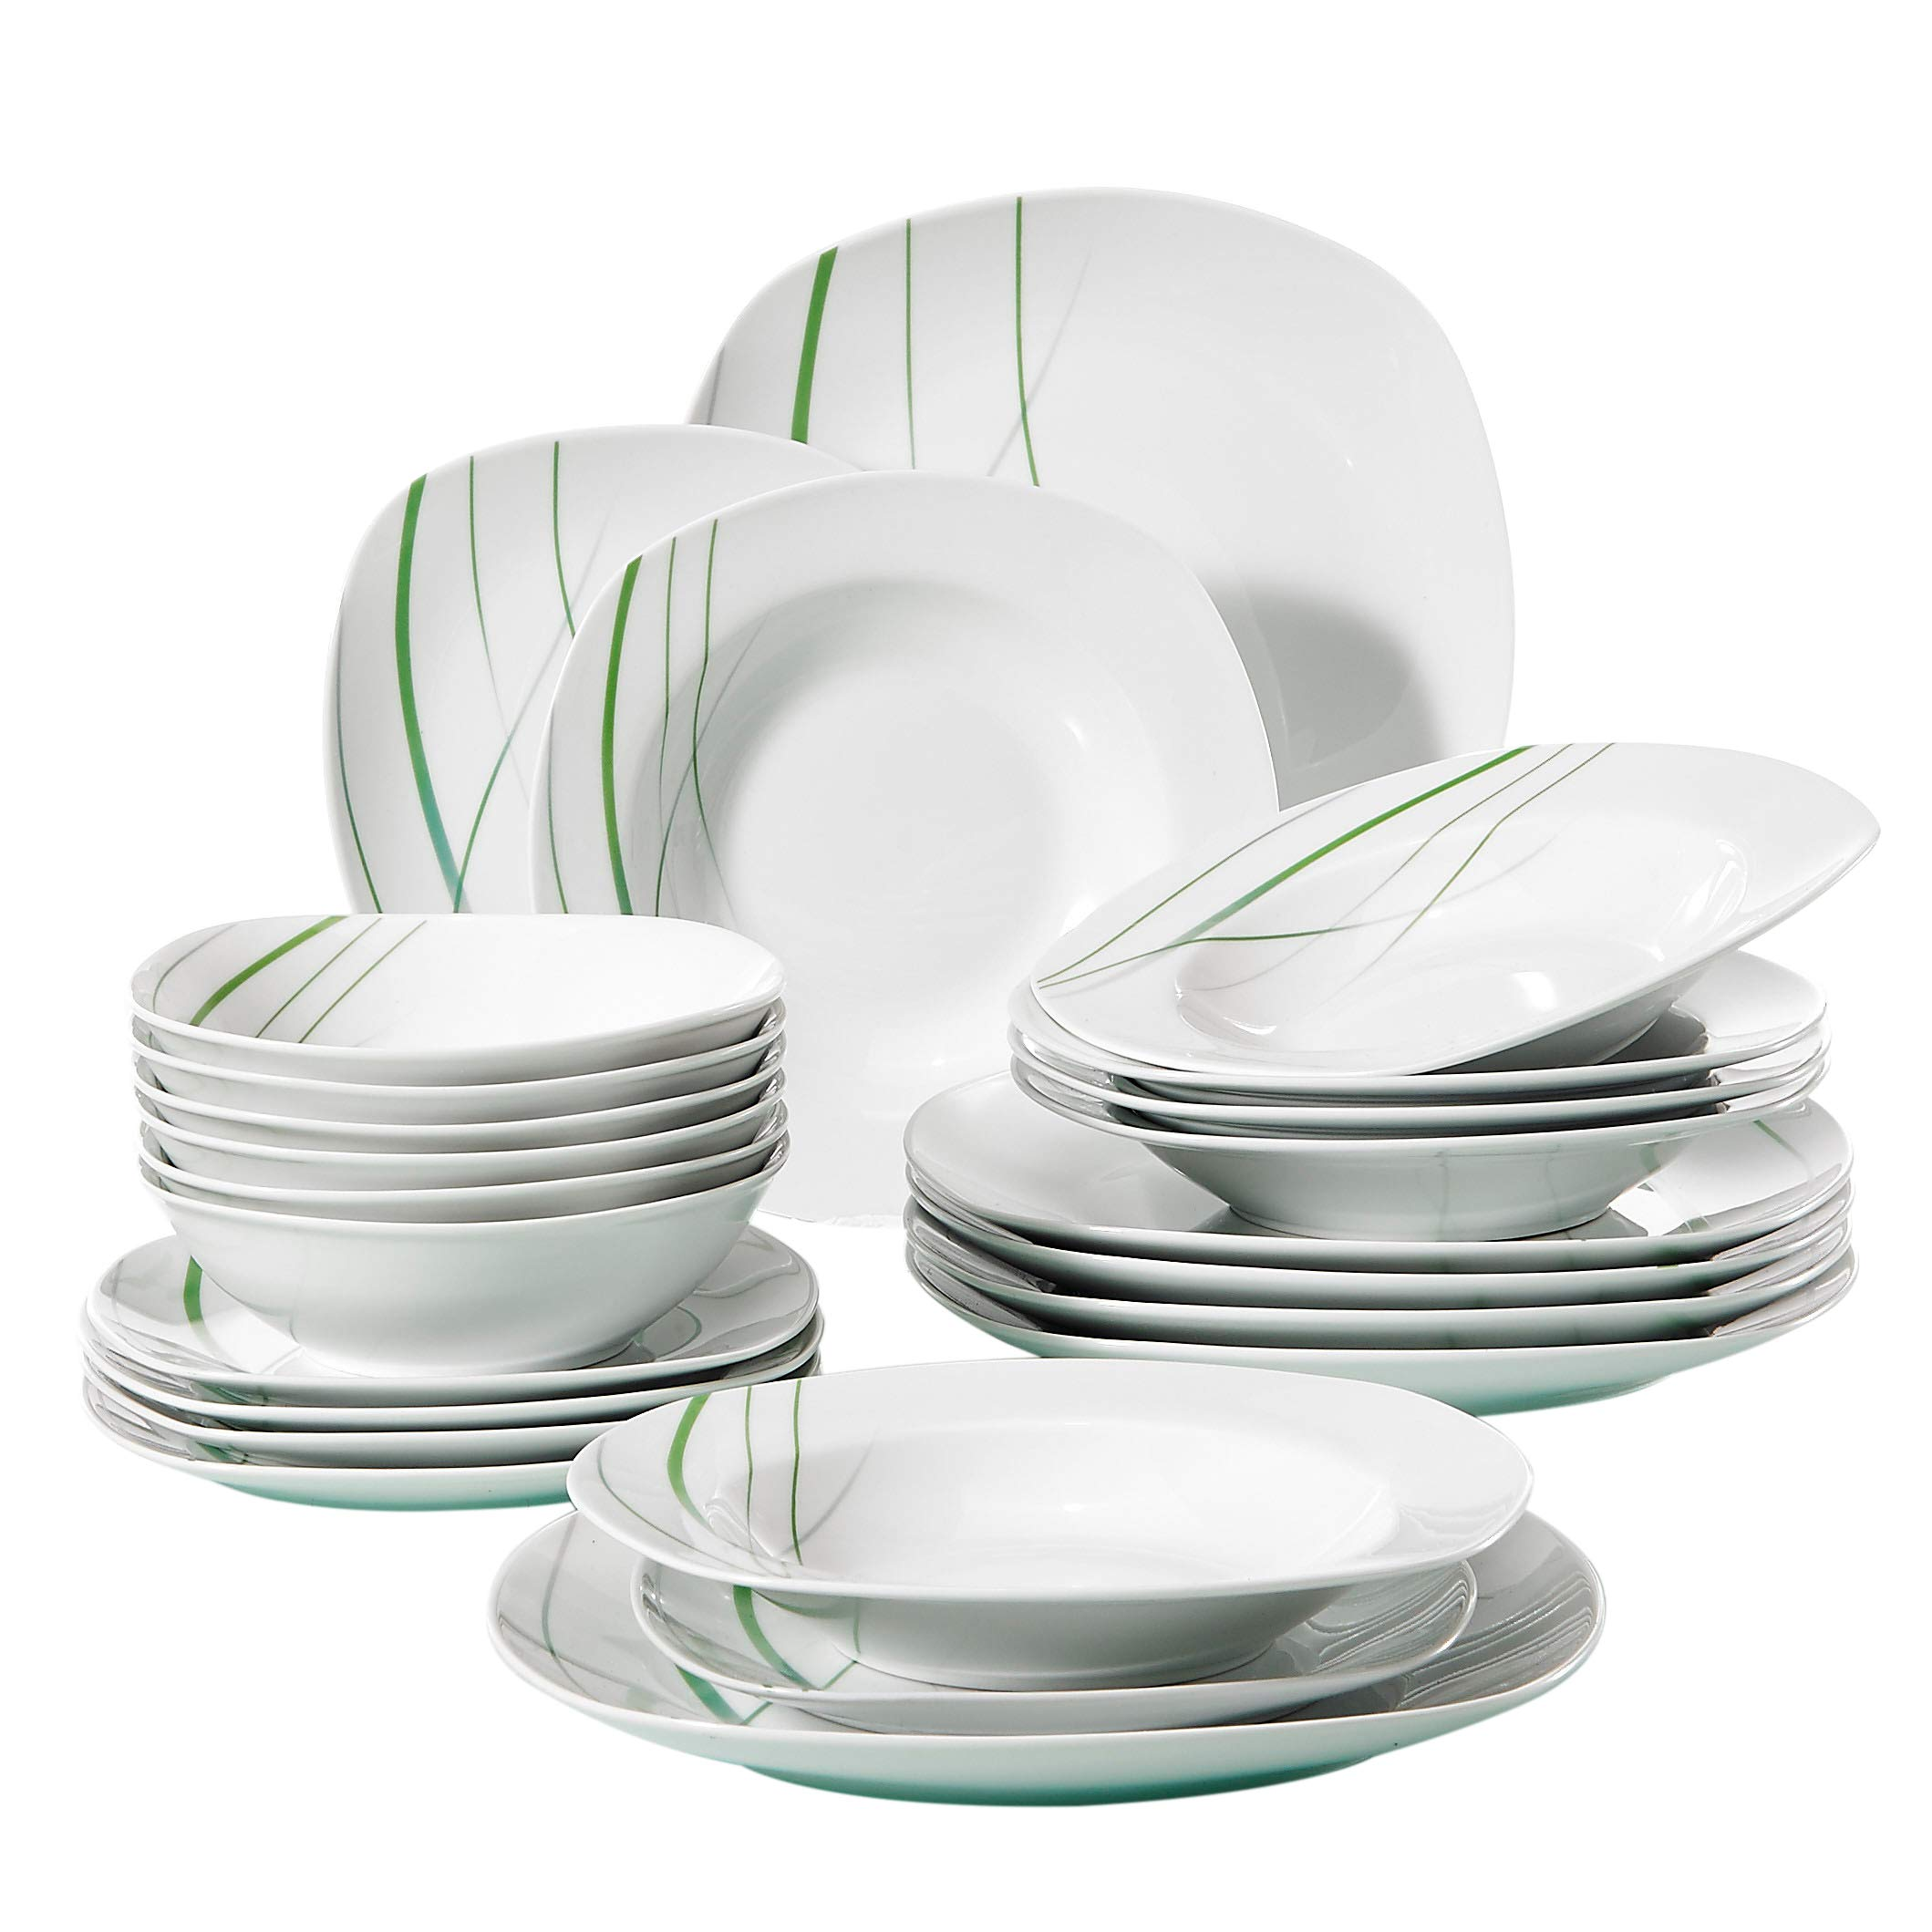 VEWEET 24-Piece Porcelain Dinnerware Set Ivory